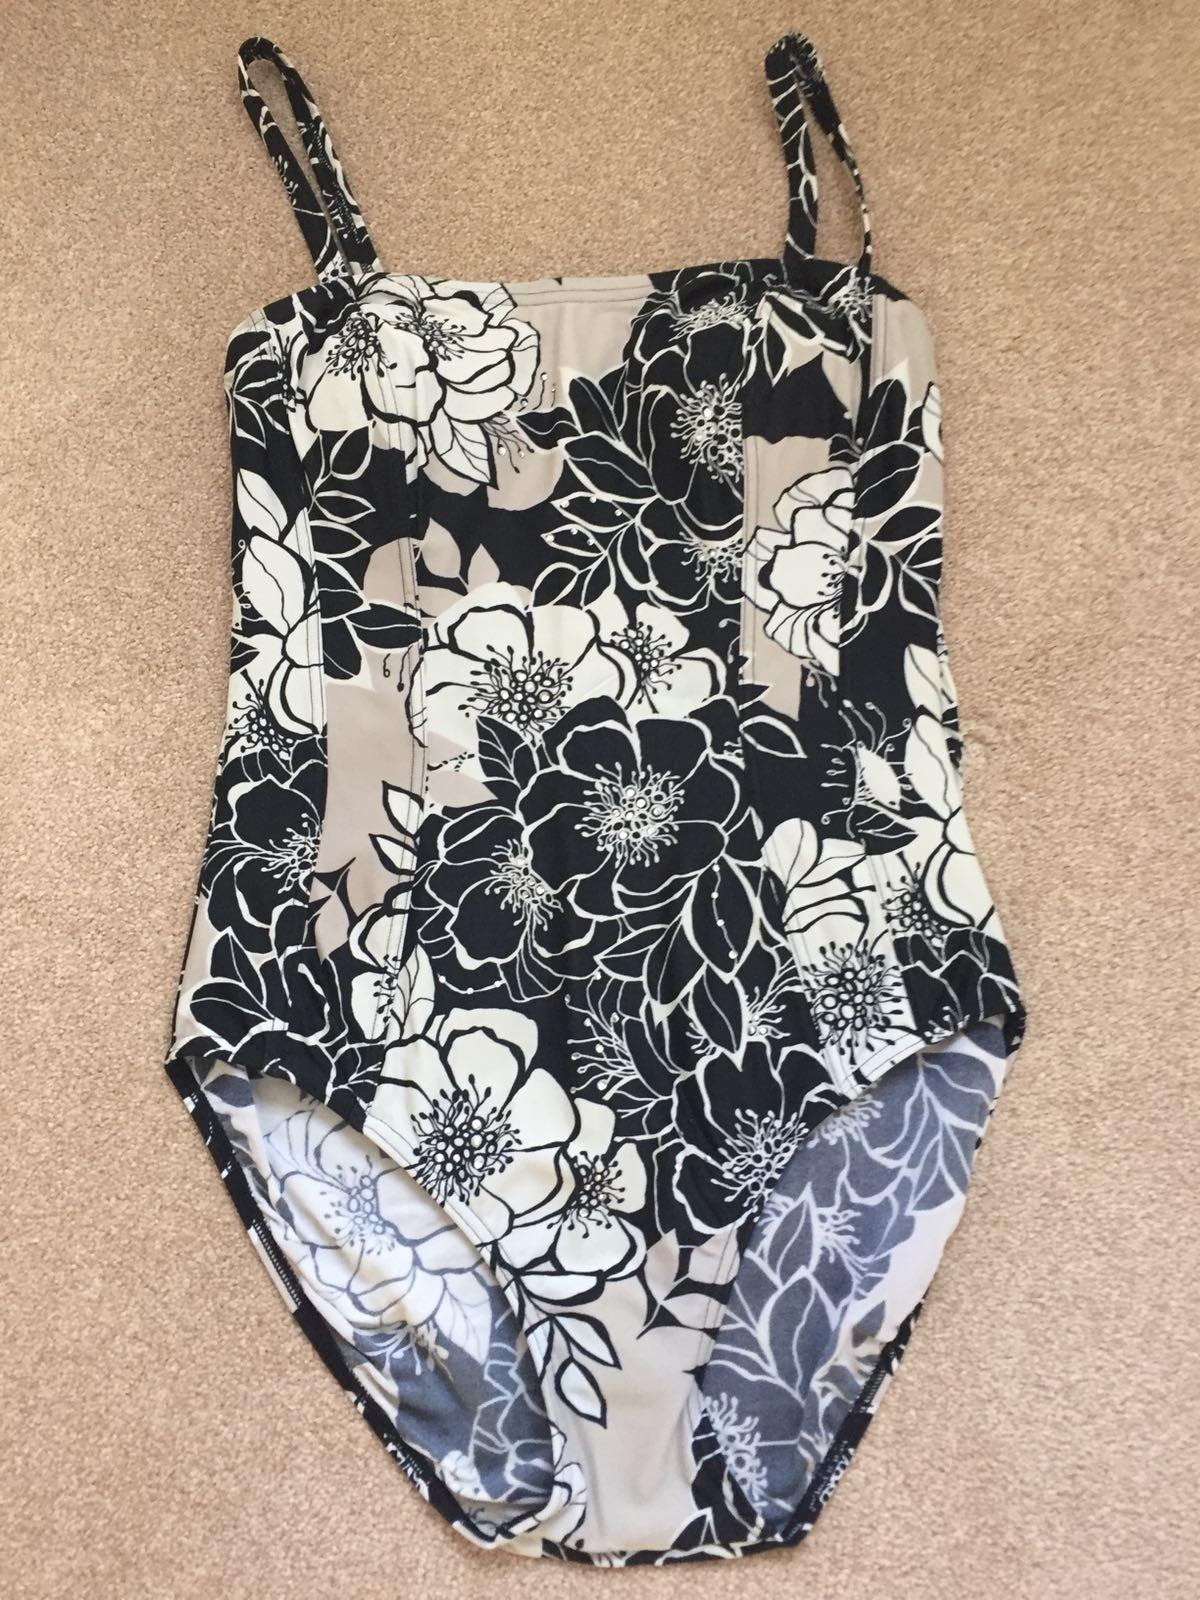 d6a5e2bd72f Debenhams Swimming Costume in Chelmsford for £6.00 for sale - Shpock